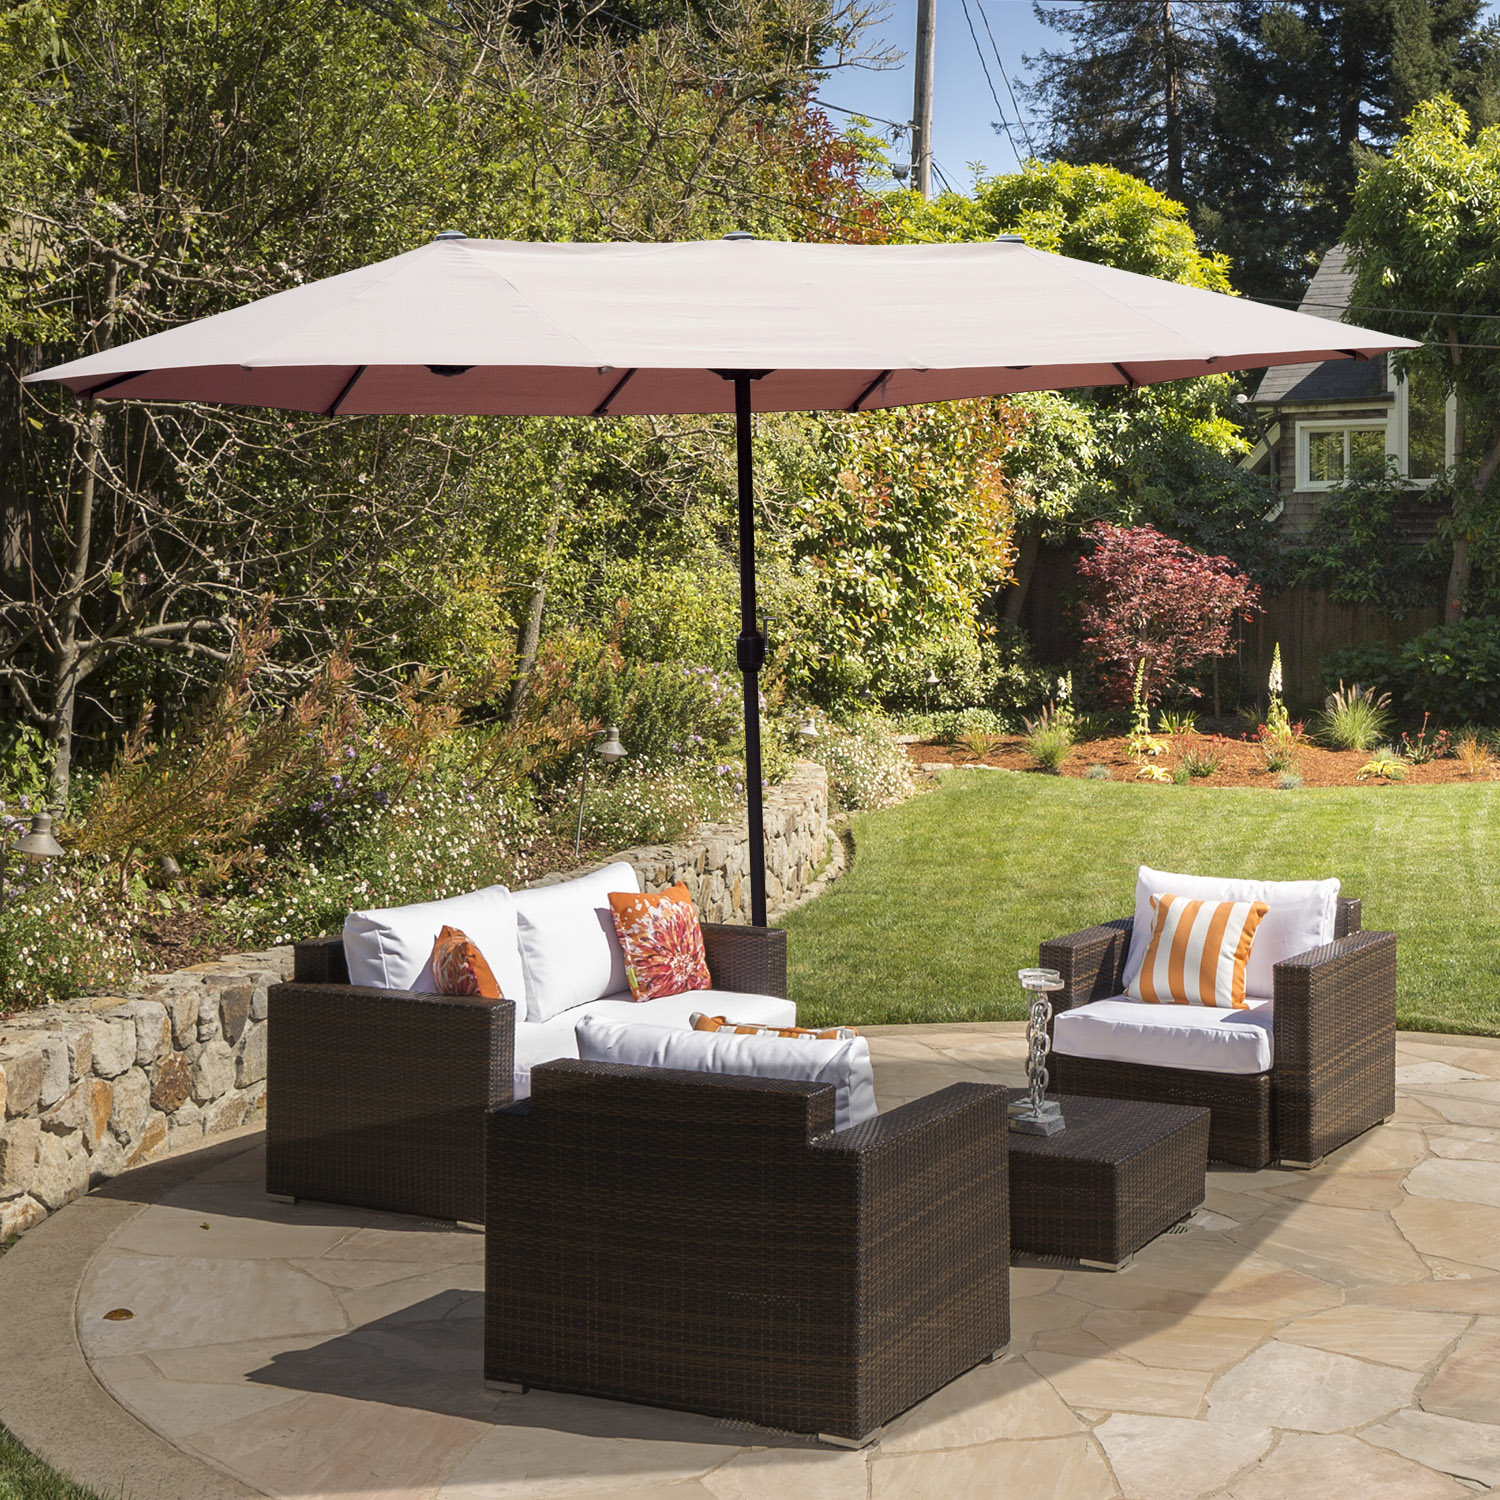 Image of CAD $129.99 Outsunny 15ft Outdoor Twin Patio Umbrella Double-Sided Market Parasol Sun Shelter with Crank Tan / (Light Coffee) w/ Canada 25093585661